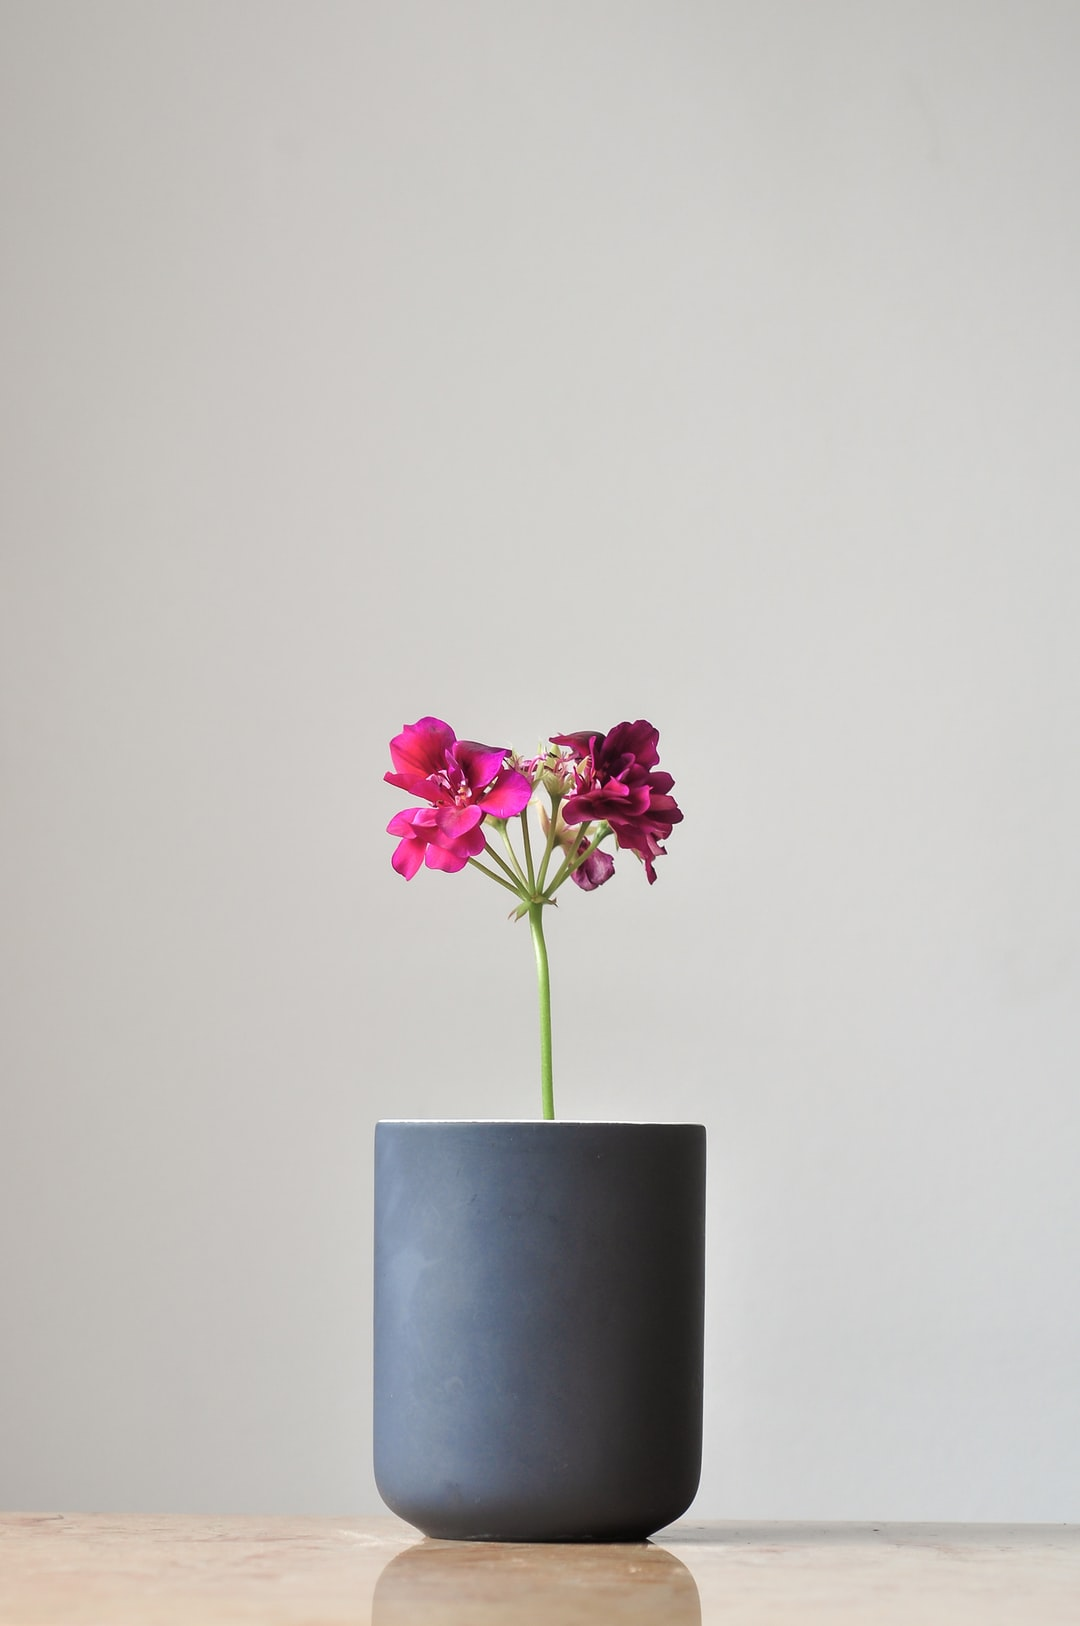 A pretentious attempt of a minimal ikebana in a toothbrush pot.